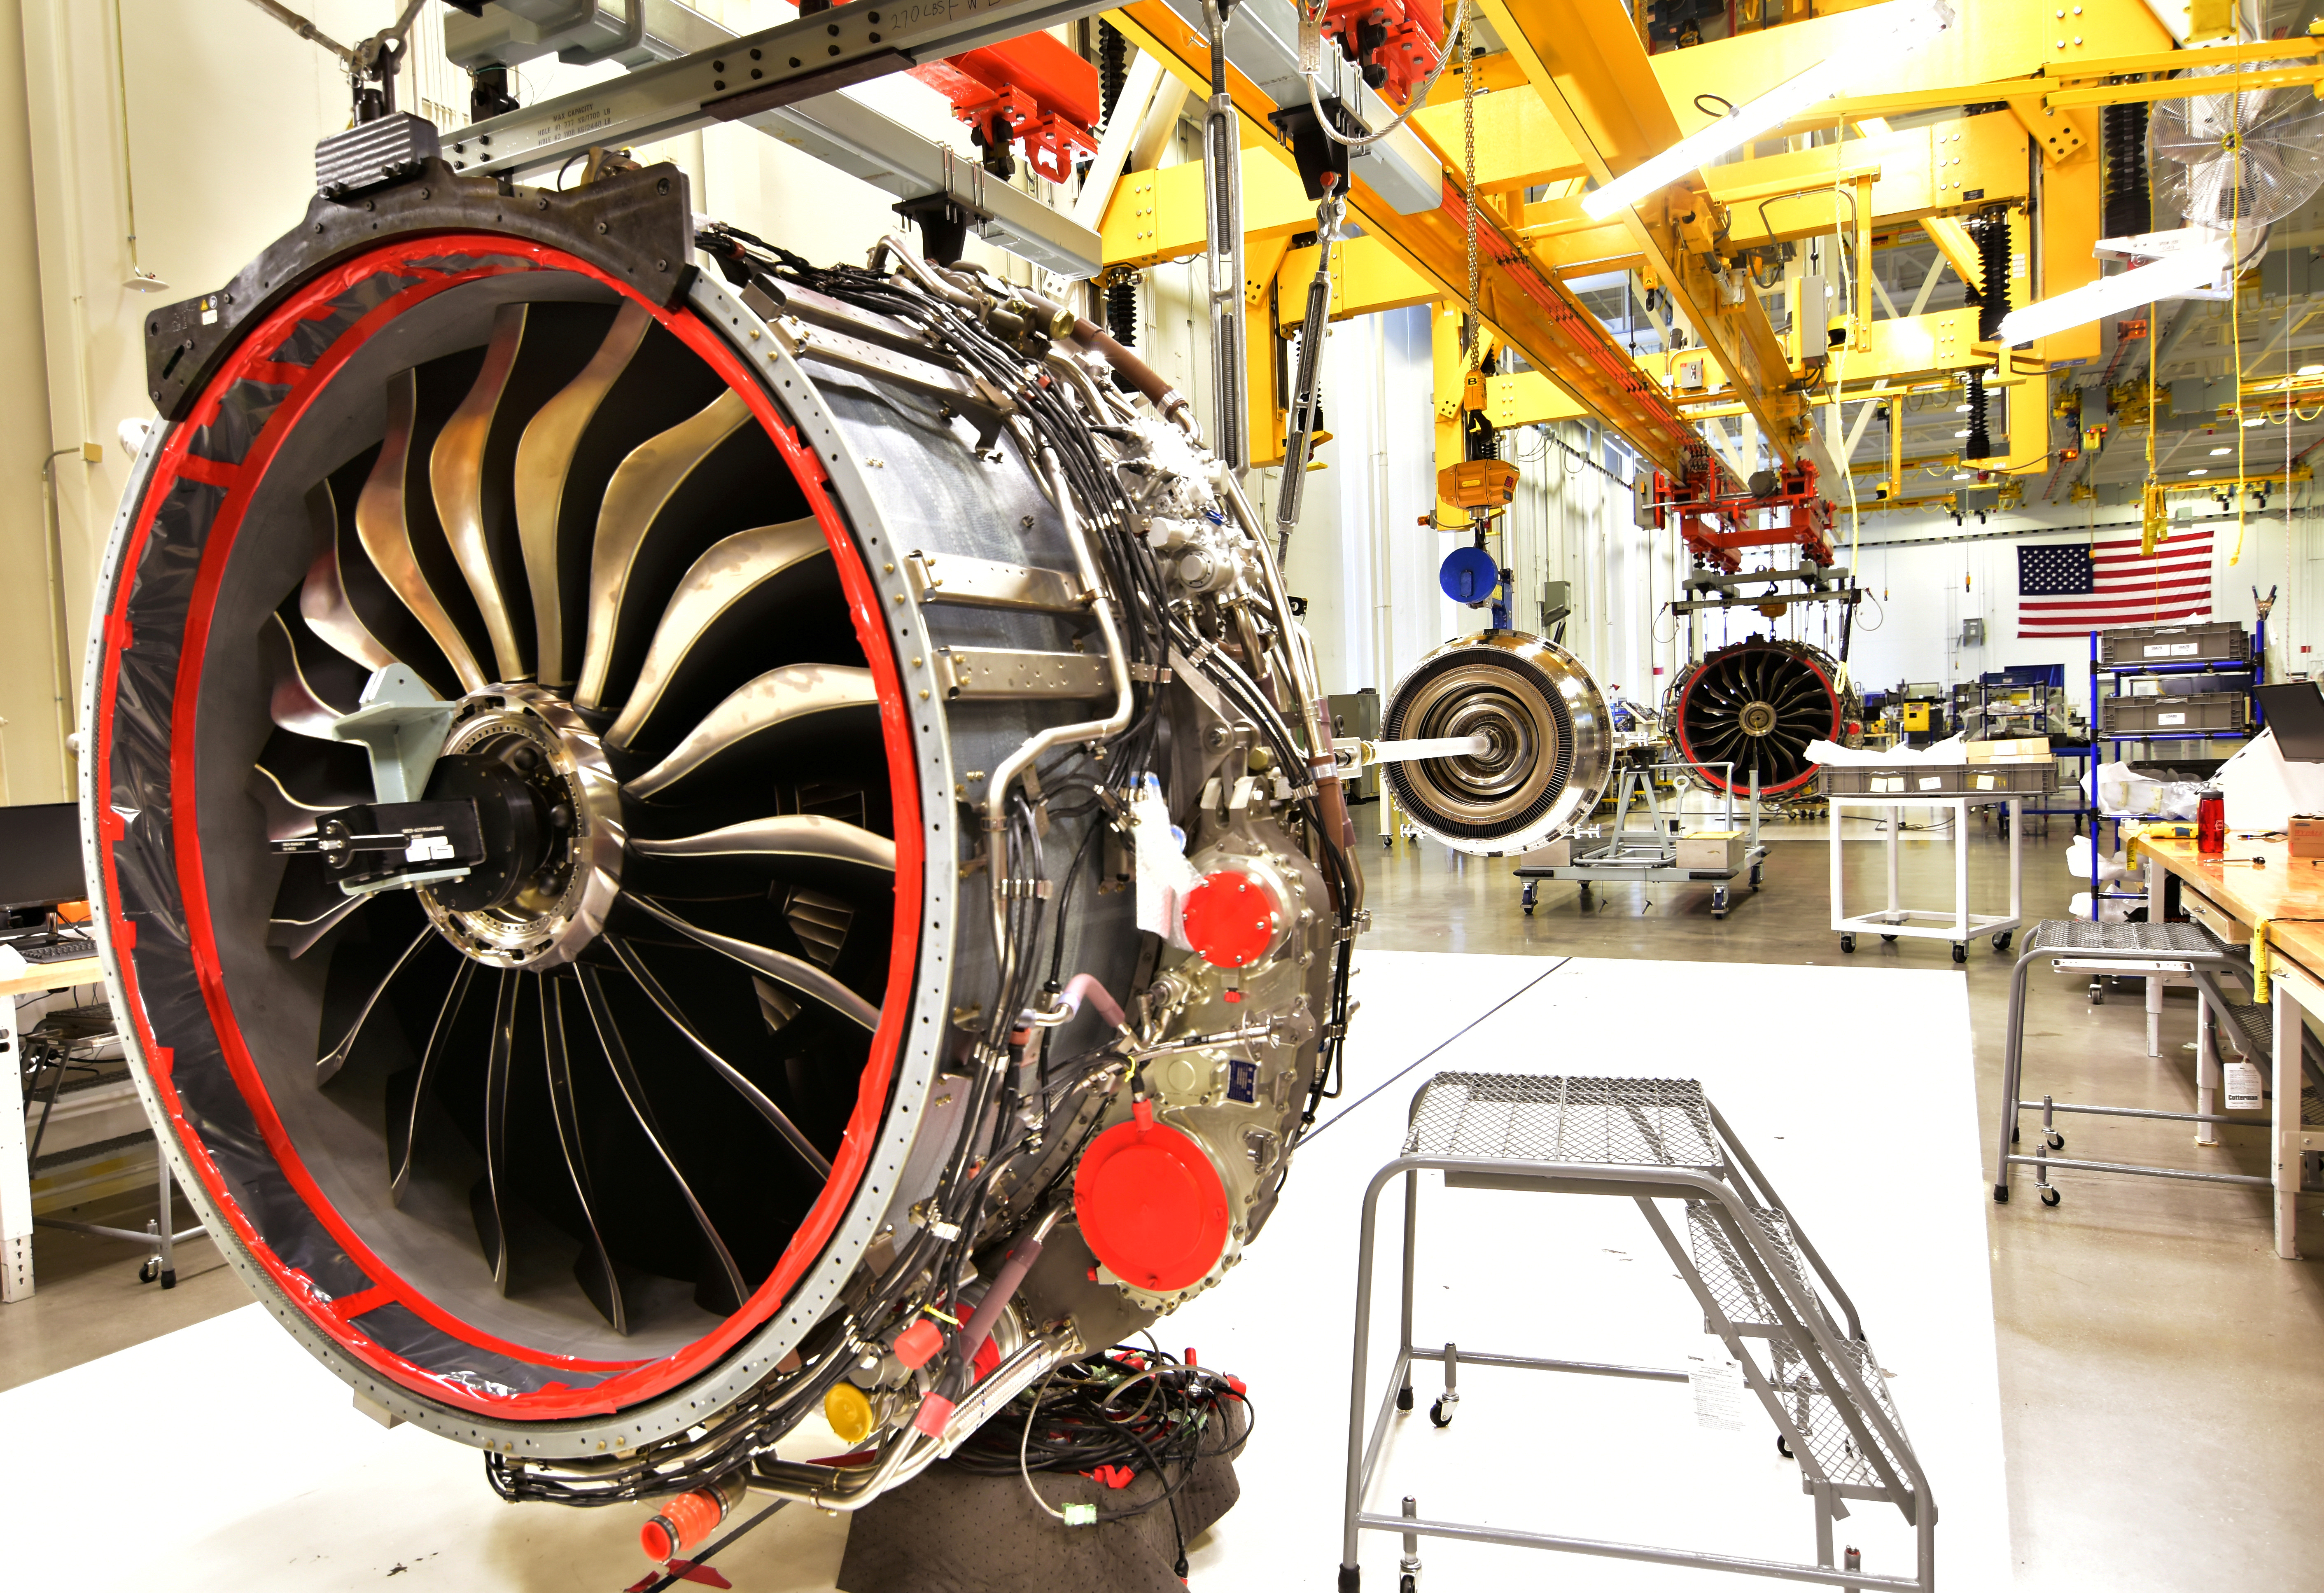 Technicians build LEAP engines for jetliners at a General Electric (GE) factory in Lafayette, Indiana, U.S. on March 29, 2017.  REUTERS/Alwyn Scott